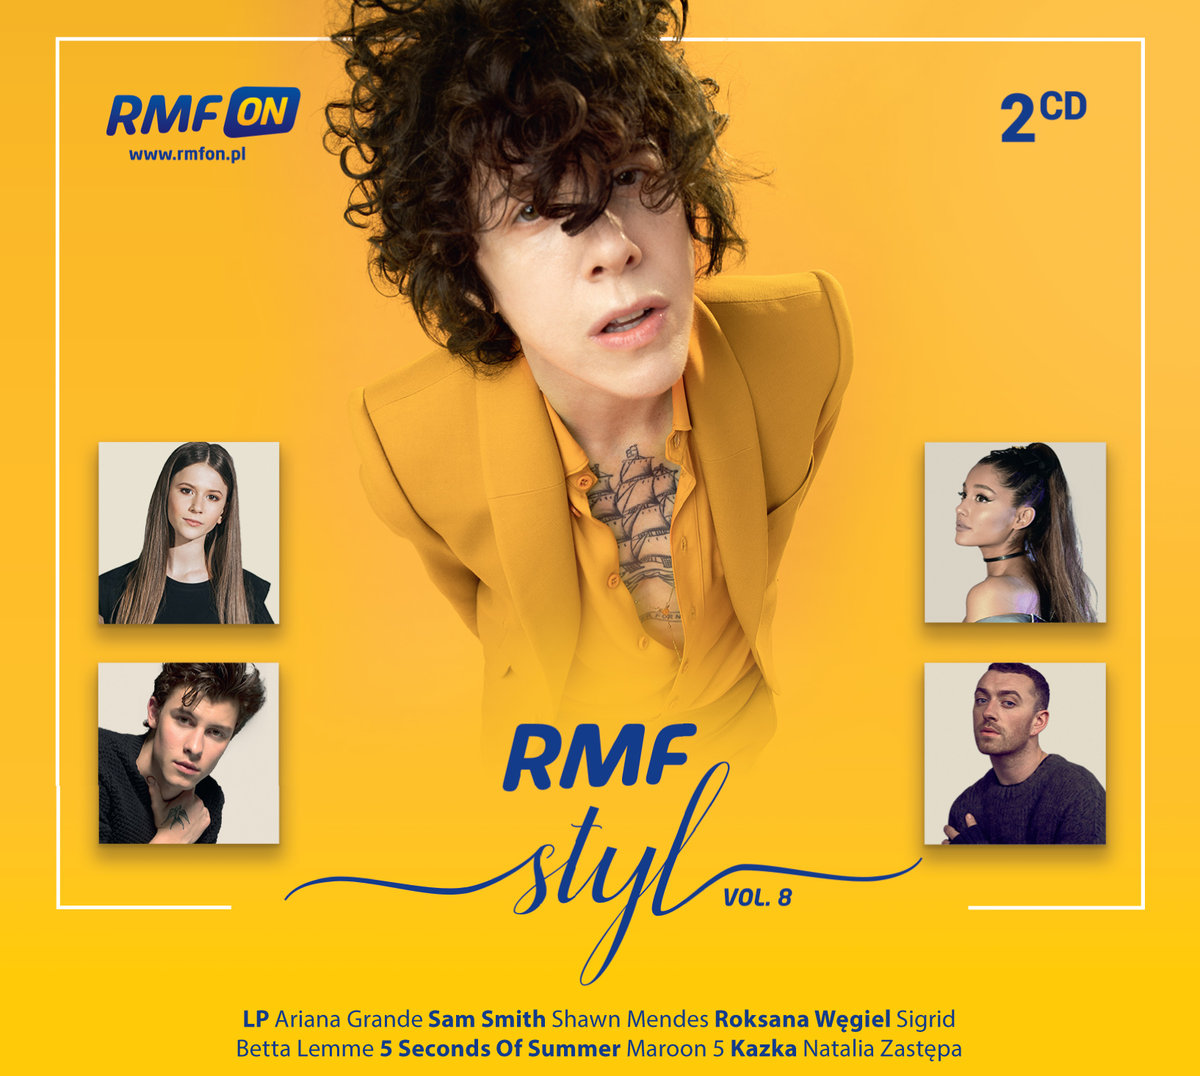 RMF ON Styl 2019 (vol. 8)